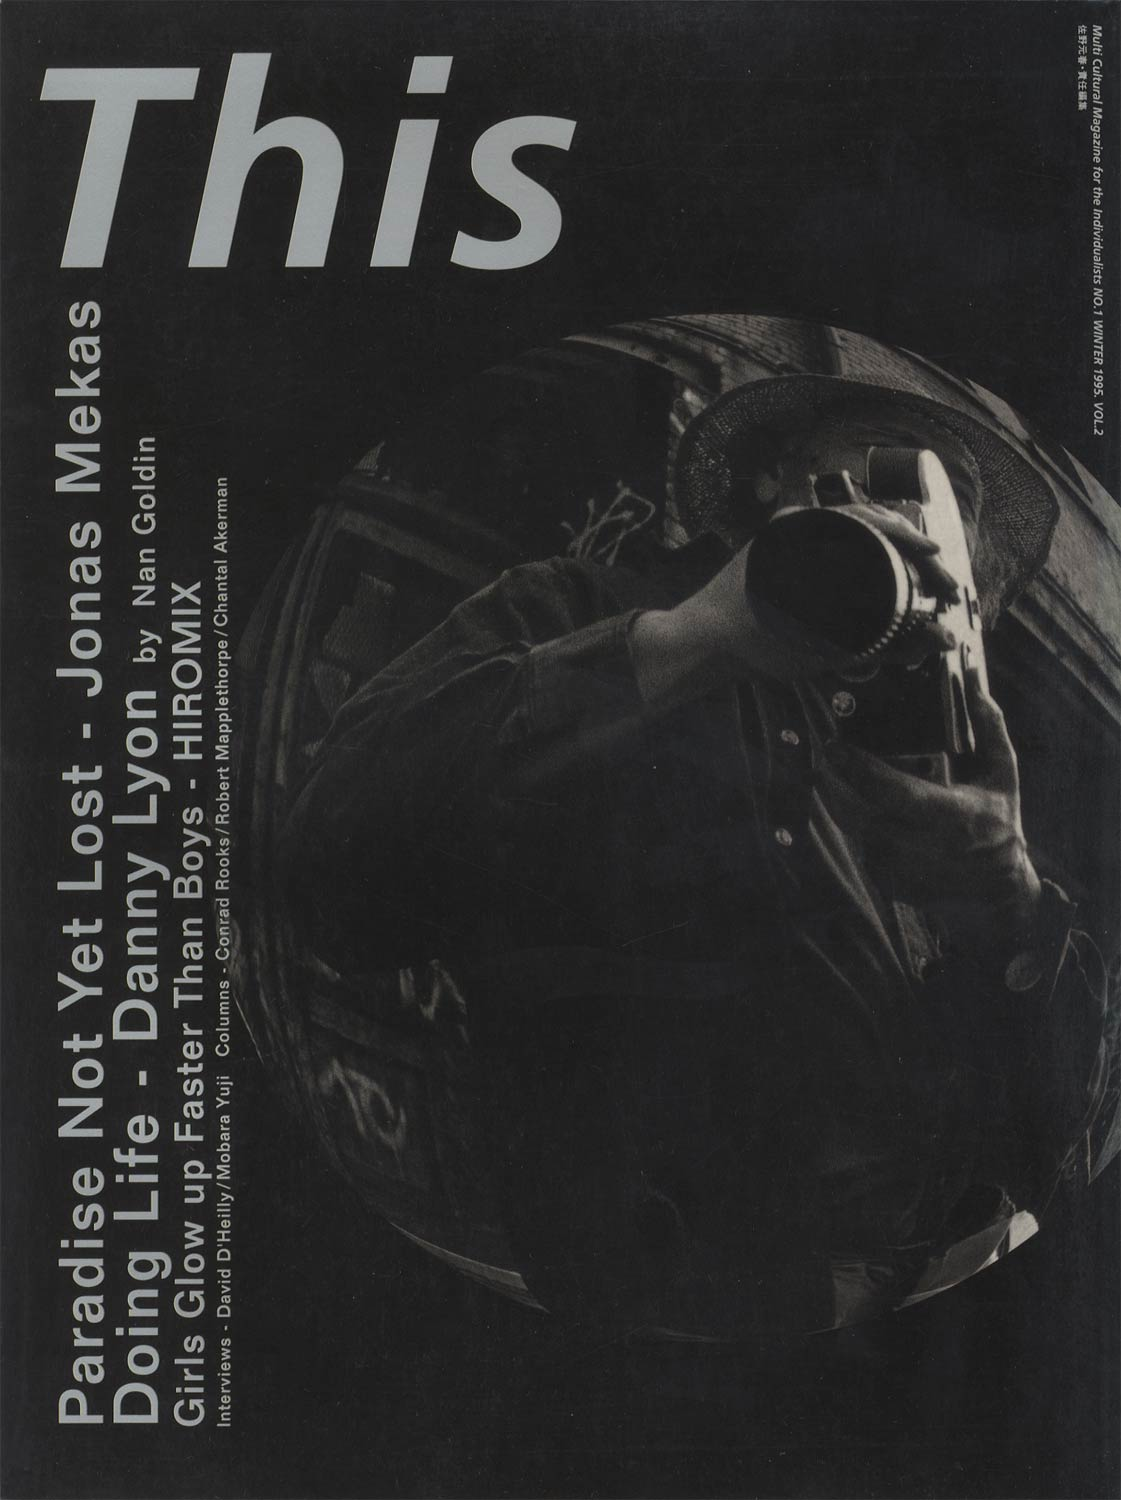 THIS MULTI CALTURAL MAGAZINE FOR THE INDIVIDUALISTS No.1 WINTER 1995 Vol.2